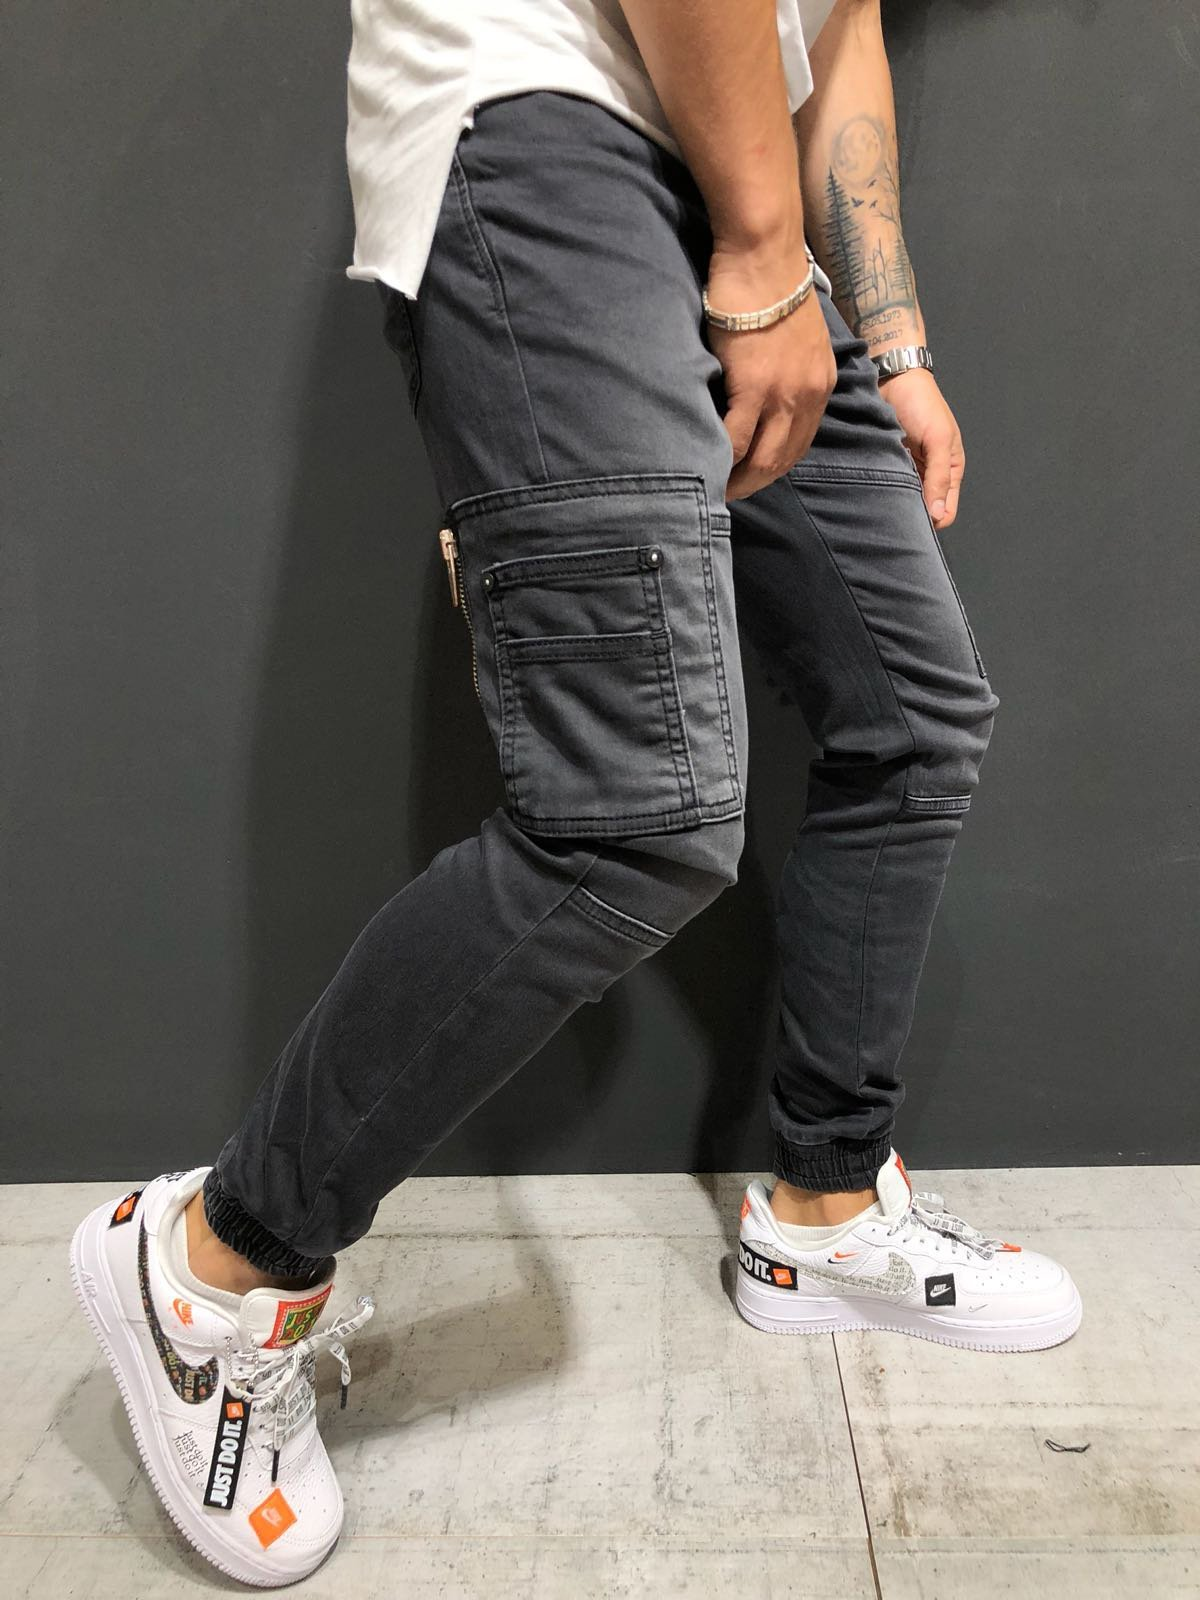 a29ba1e3ff4f Monocloth Men s Cargo Jeans Streetwear Jogger Denim Elastic Ankle Skinny  Fit Soft Lycra Fabric Casual Street Fashion - PRODUCT FEATURES  Men s  Streetwear ...